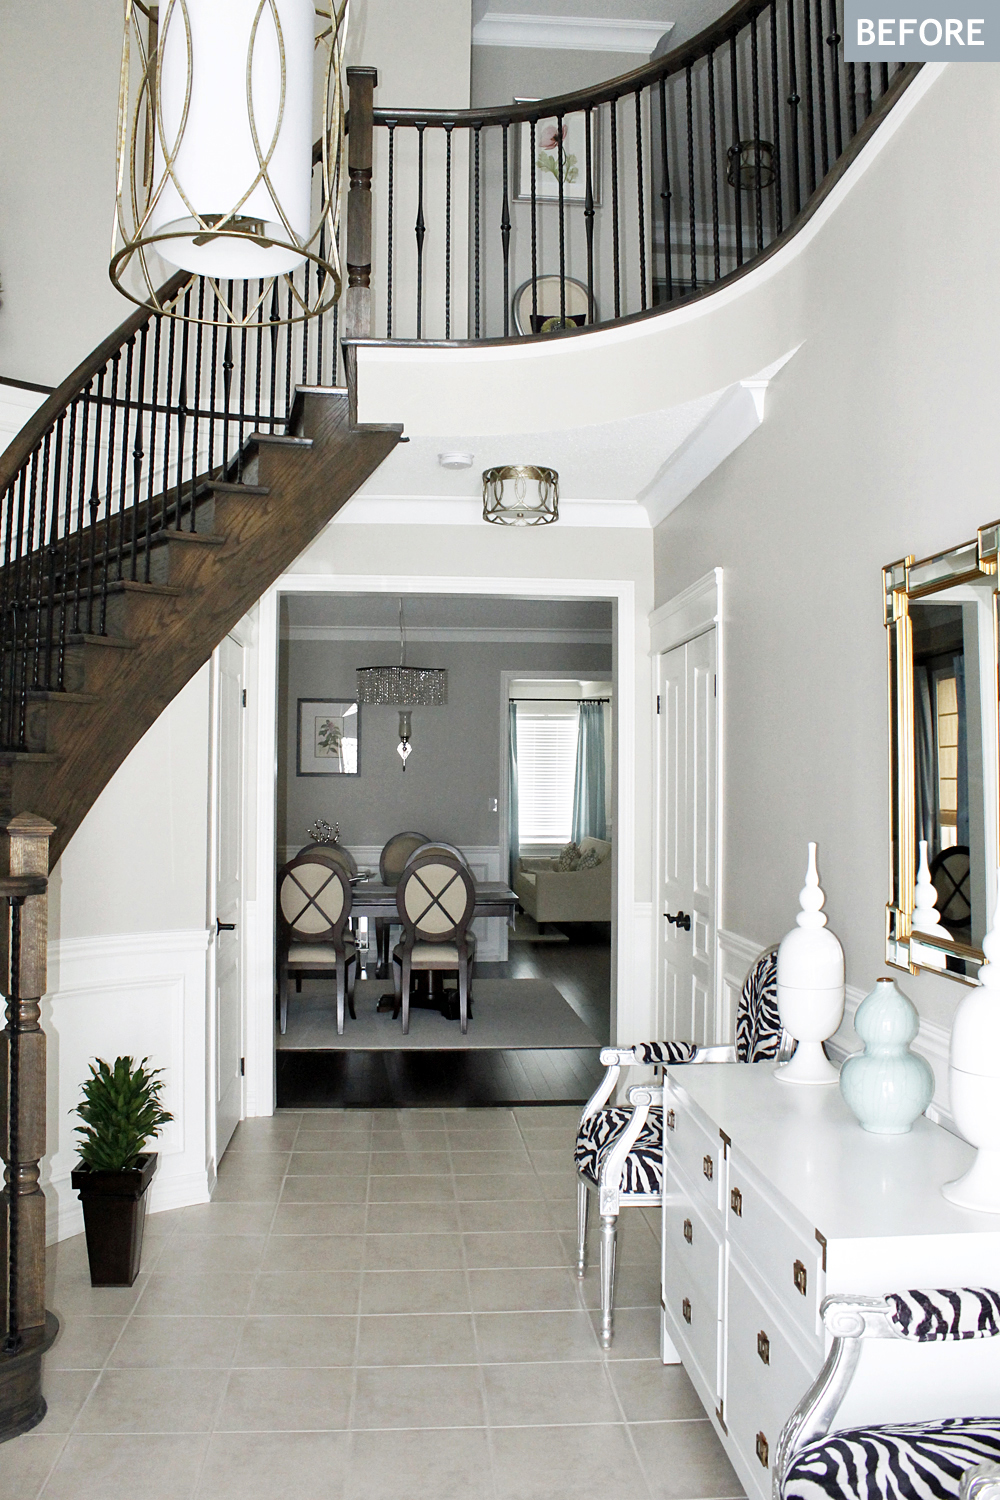 AM Dolce Vita: Foyer Tile and Rug